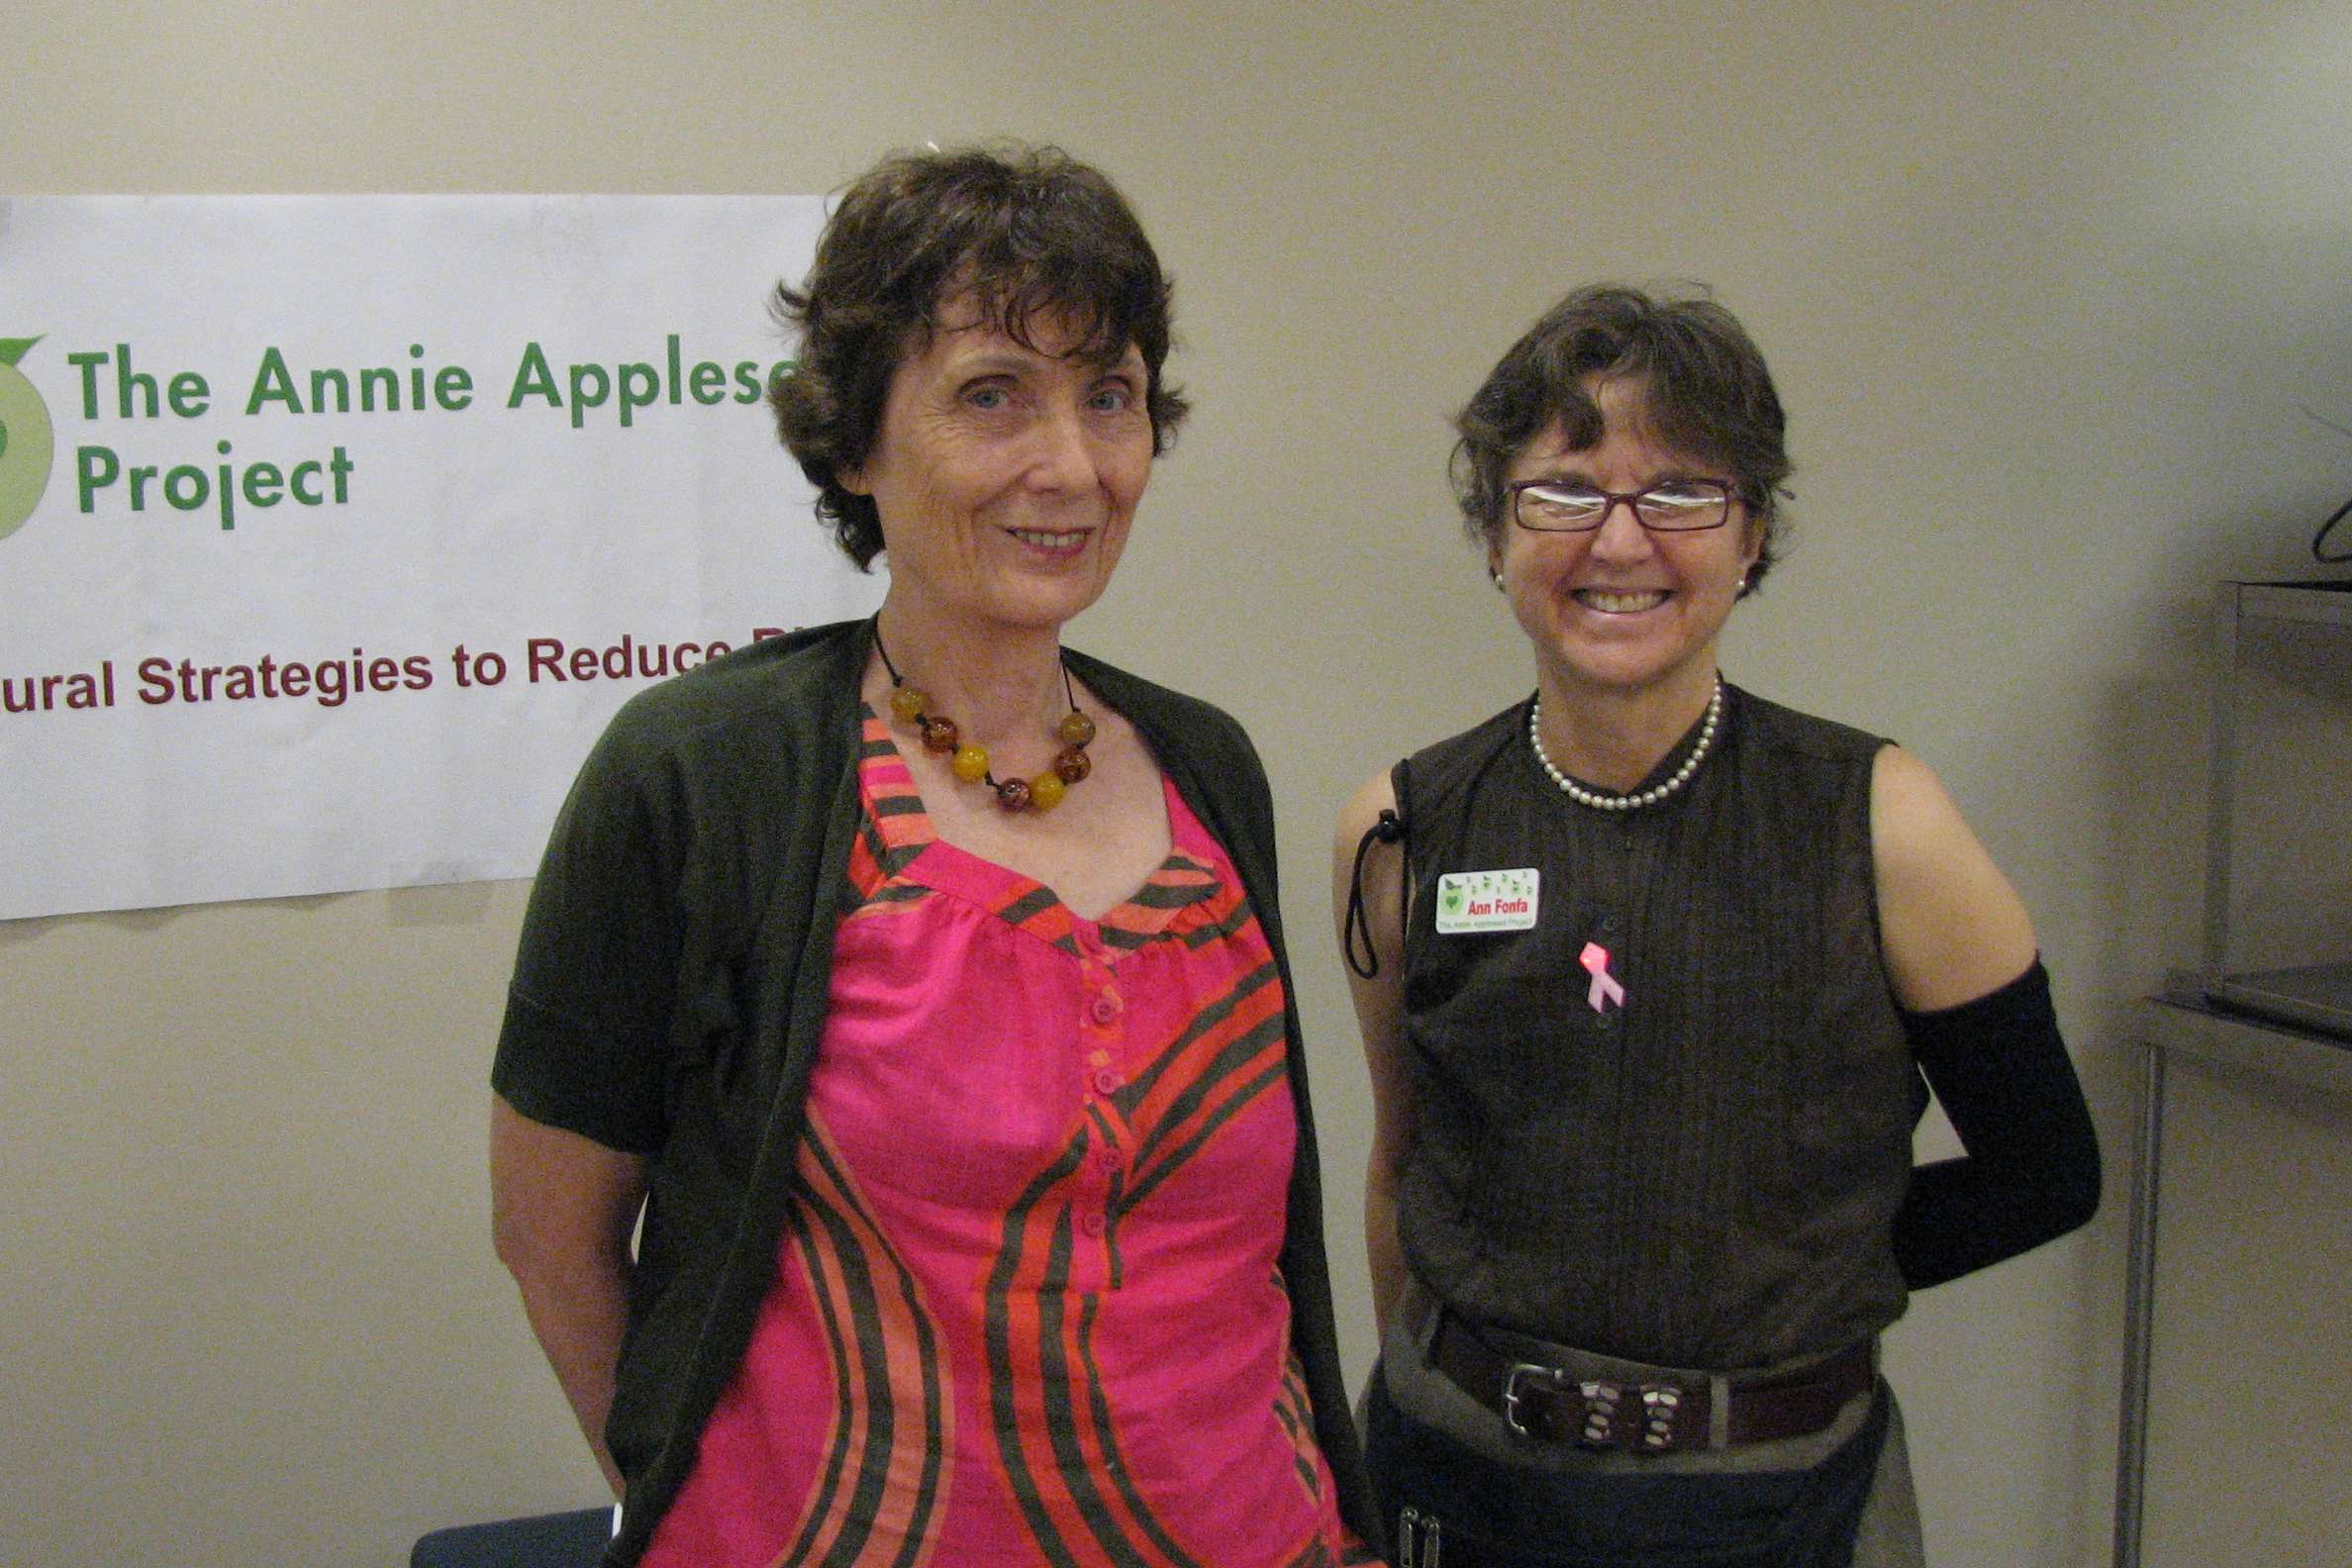 annie appleseed project I couldn't have asked for more from the 10th annual evidence-based complementary & alternative cancer therapies conference put on by the annie appleseed project.